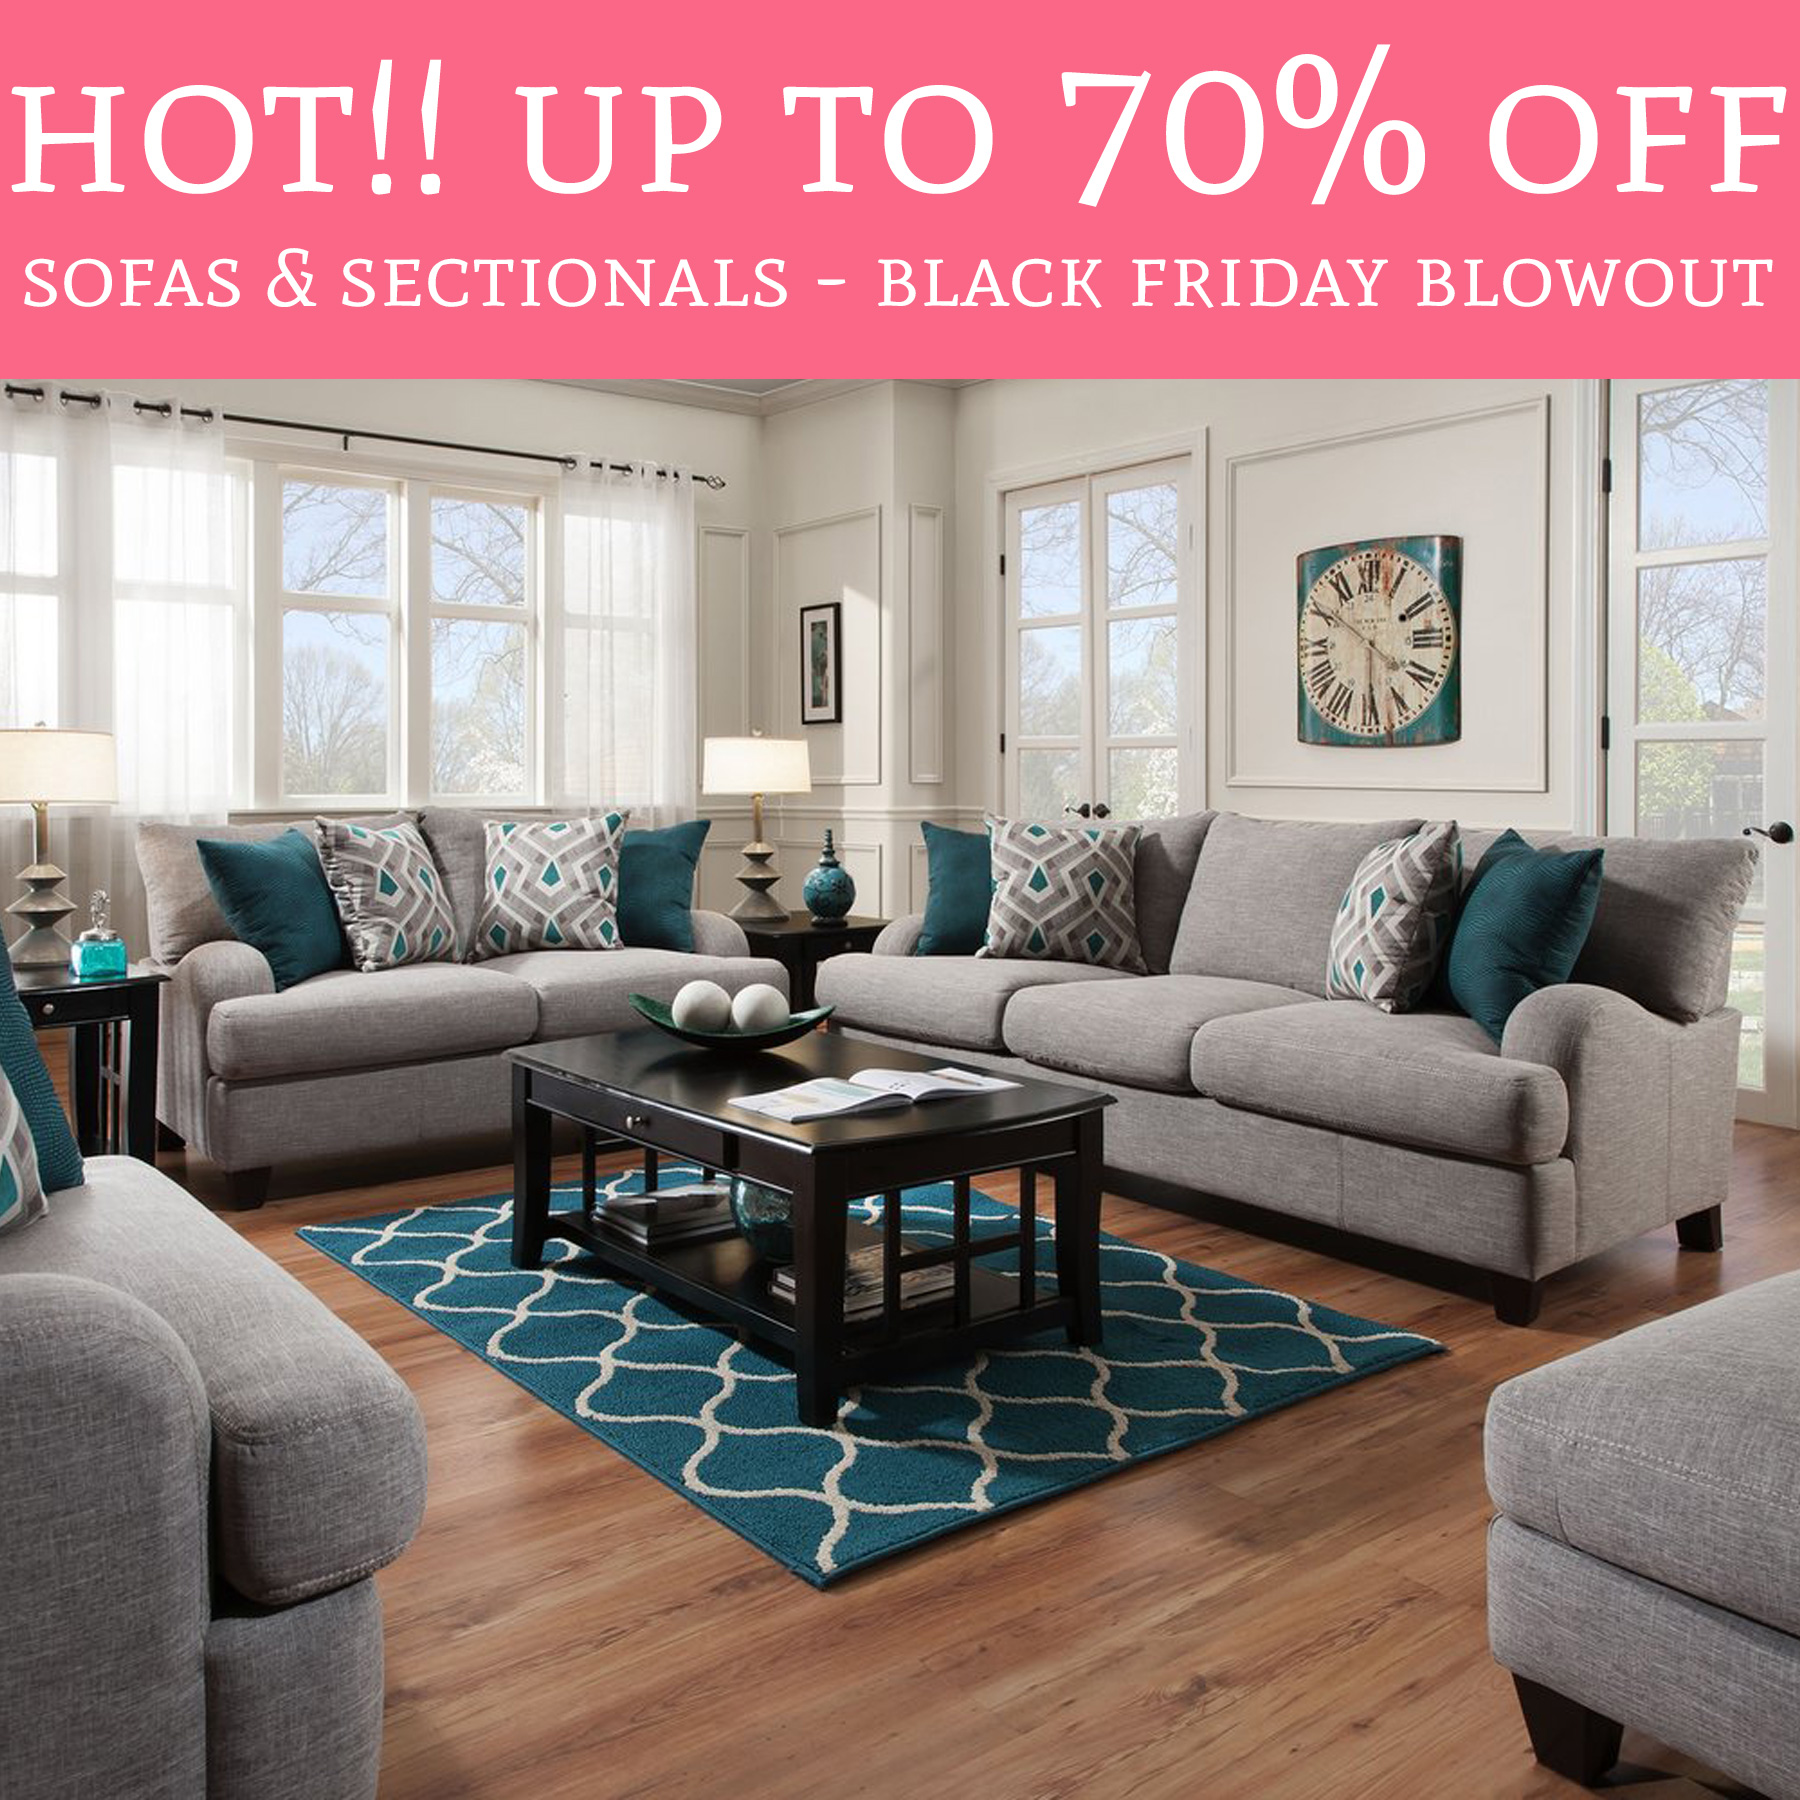 HOT Black Friday Blowout Sale Up to 70 Off Sofas